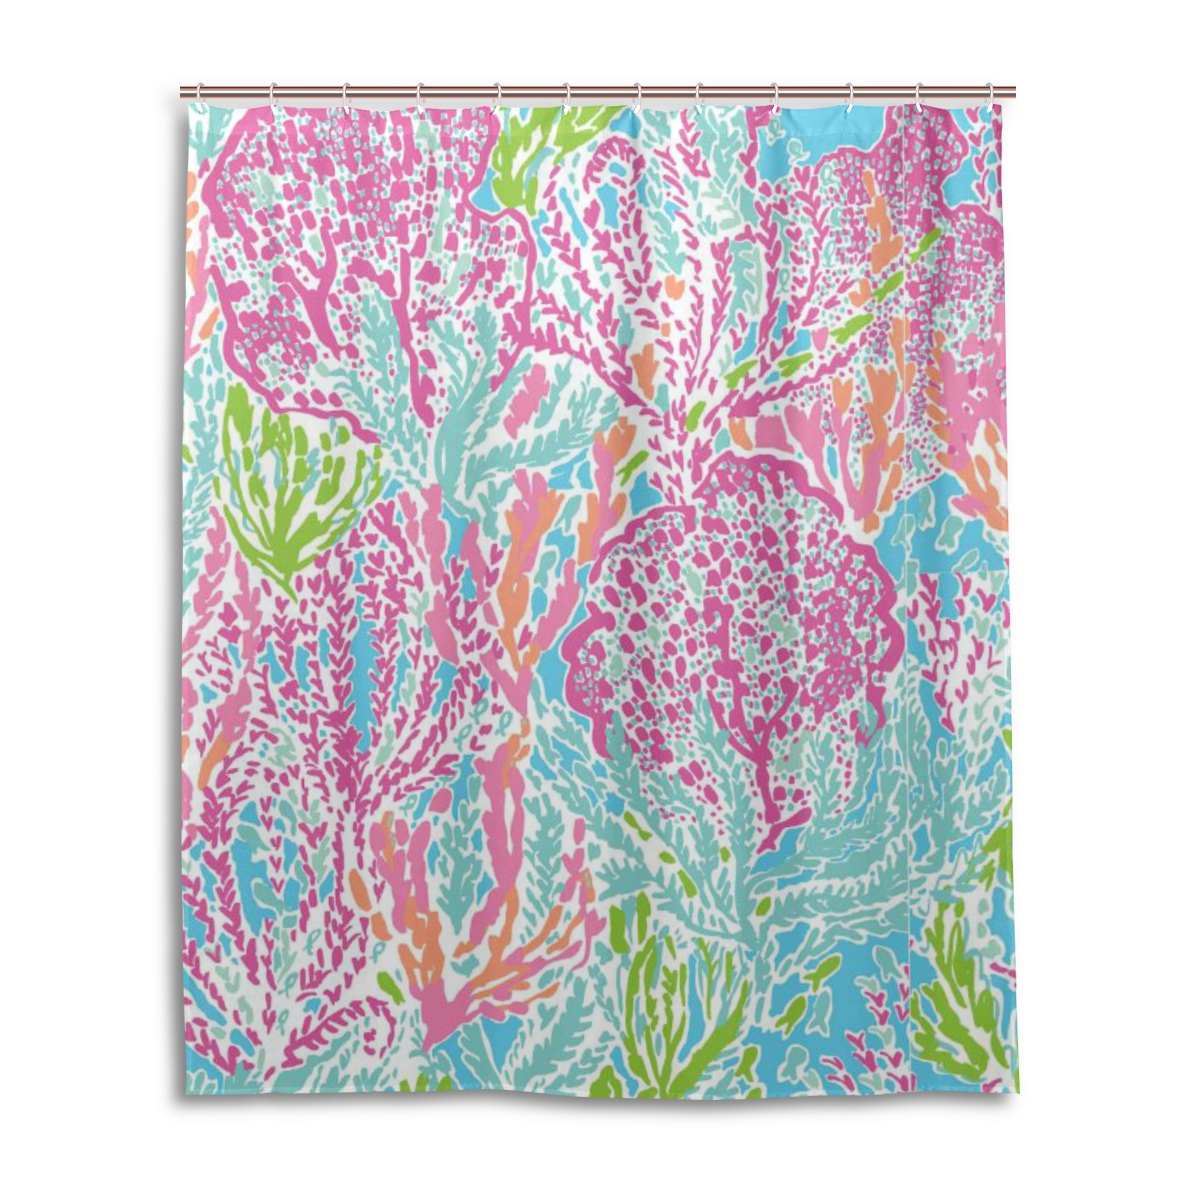 60x72 Inch (152x182cm) Stall Shower Curtain Waterproof With Hooks Mildew